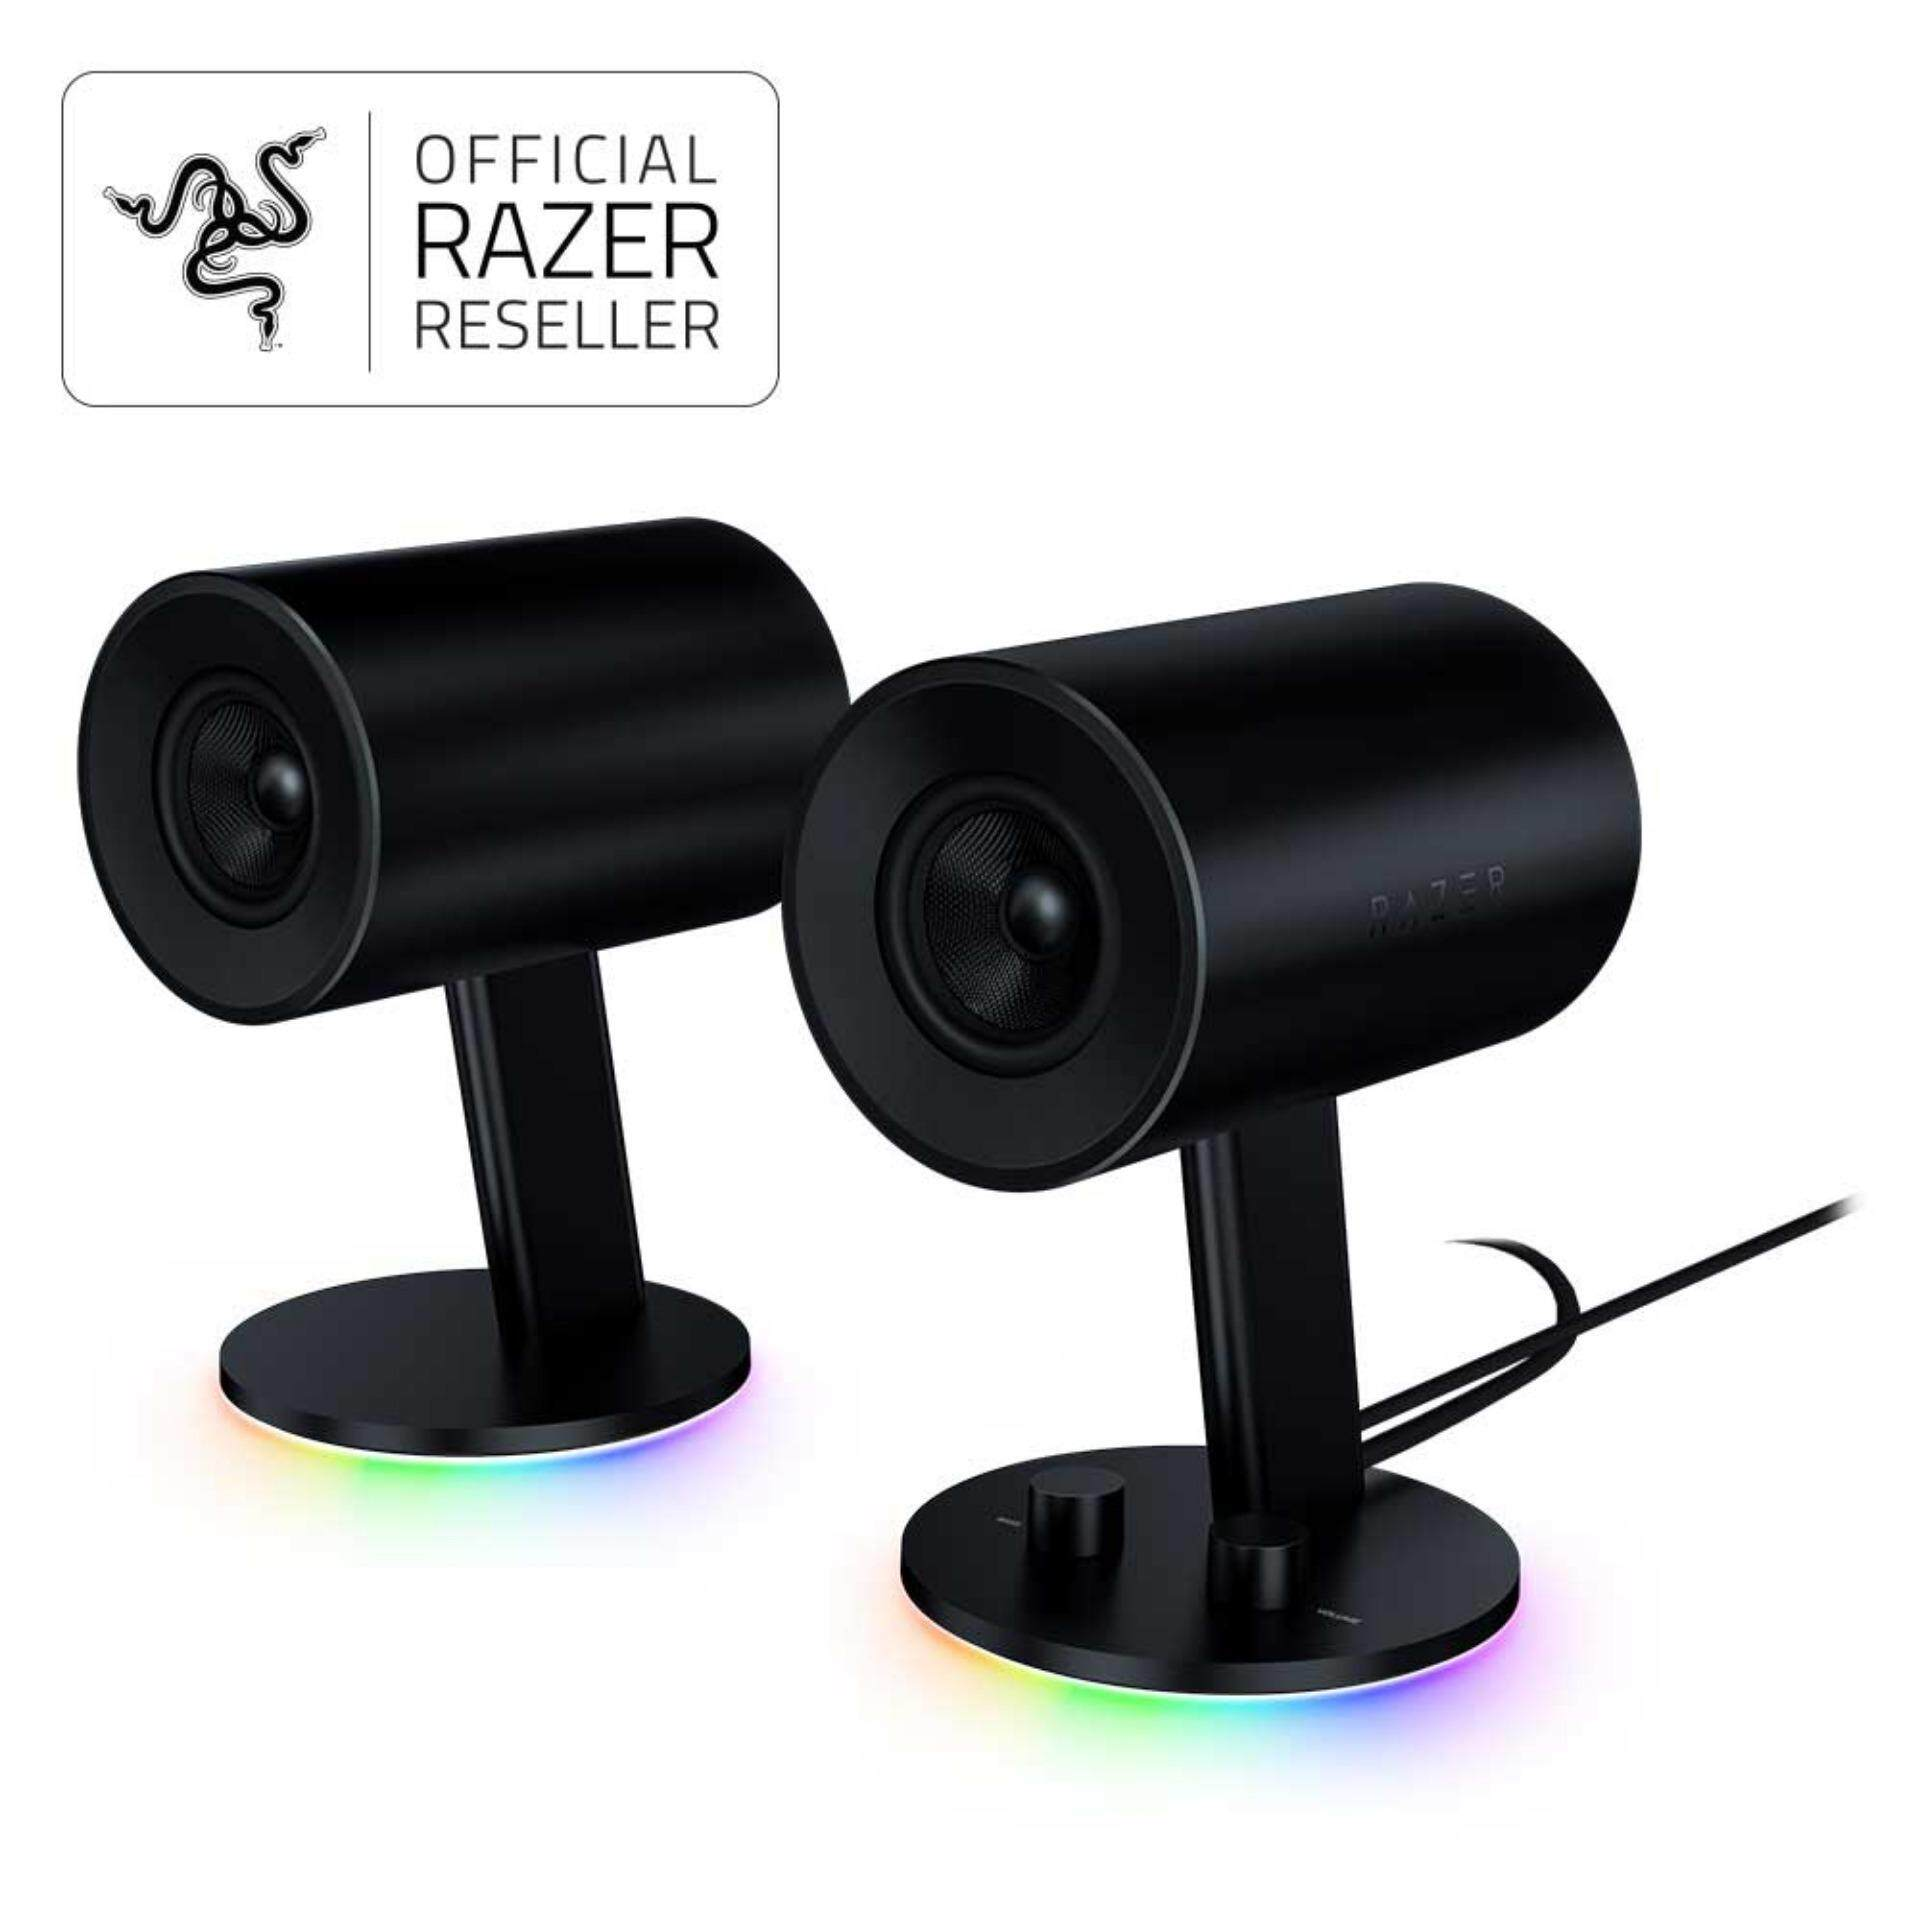 Razer Gaming Gear Speaker Nommo Chroma 2.0 By Razer_officialstore.